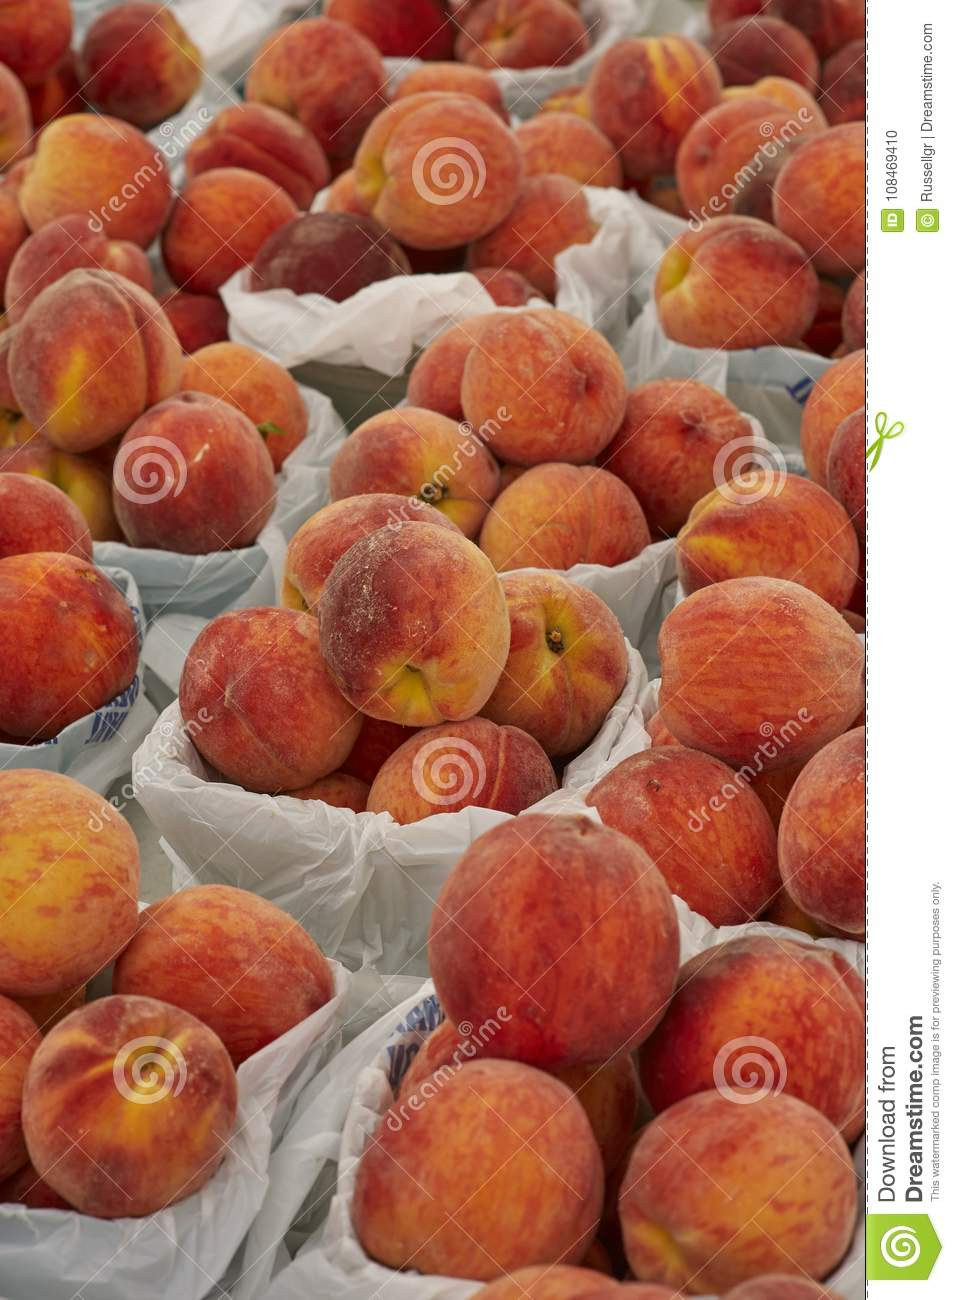 Red Peaches For Sale At Outdoor Door Market Stock Photo Image Of